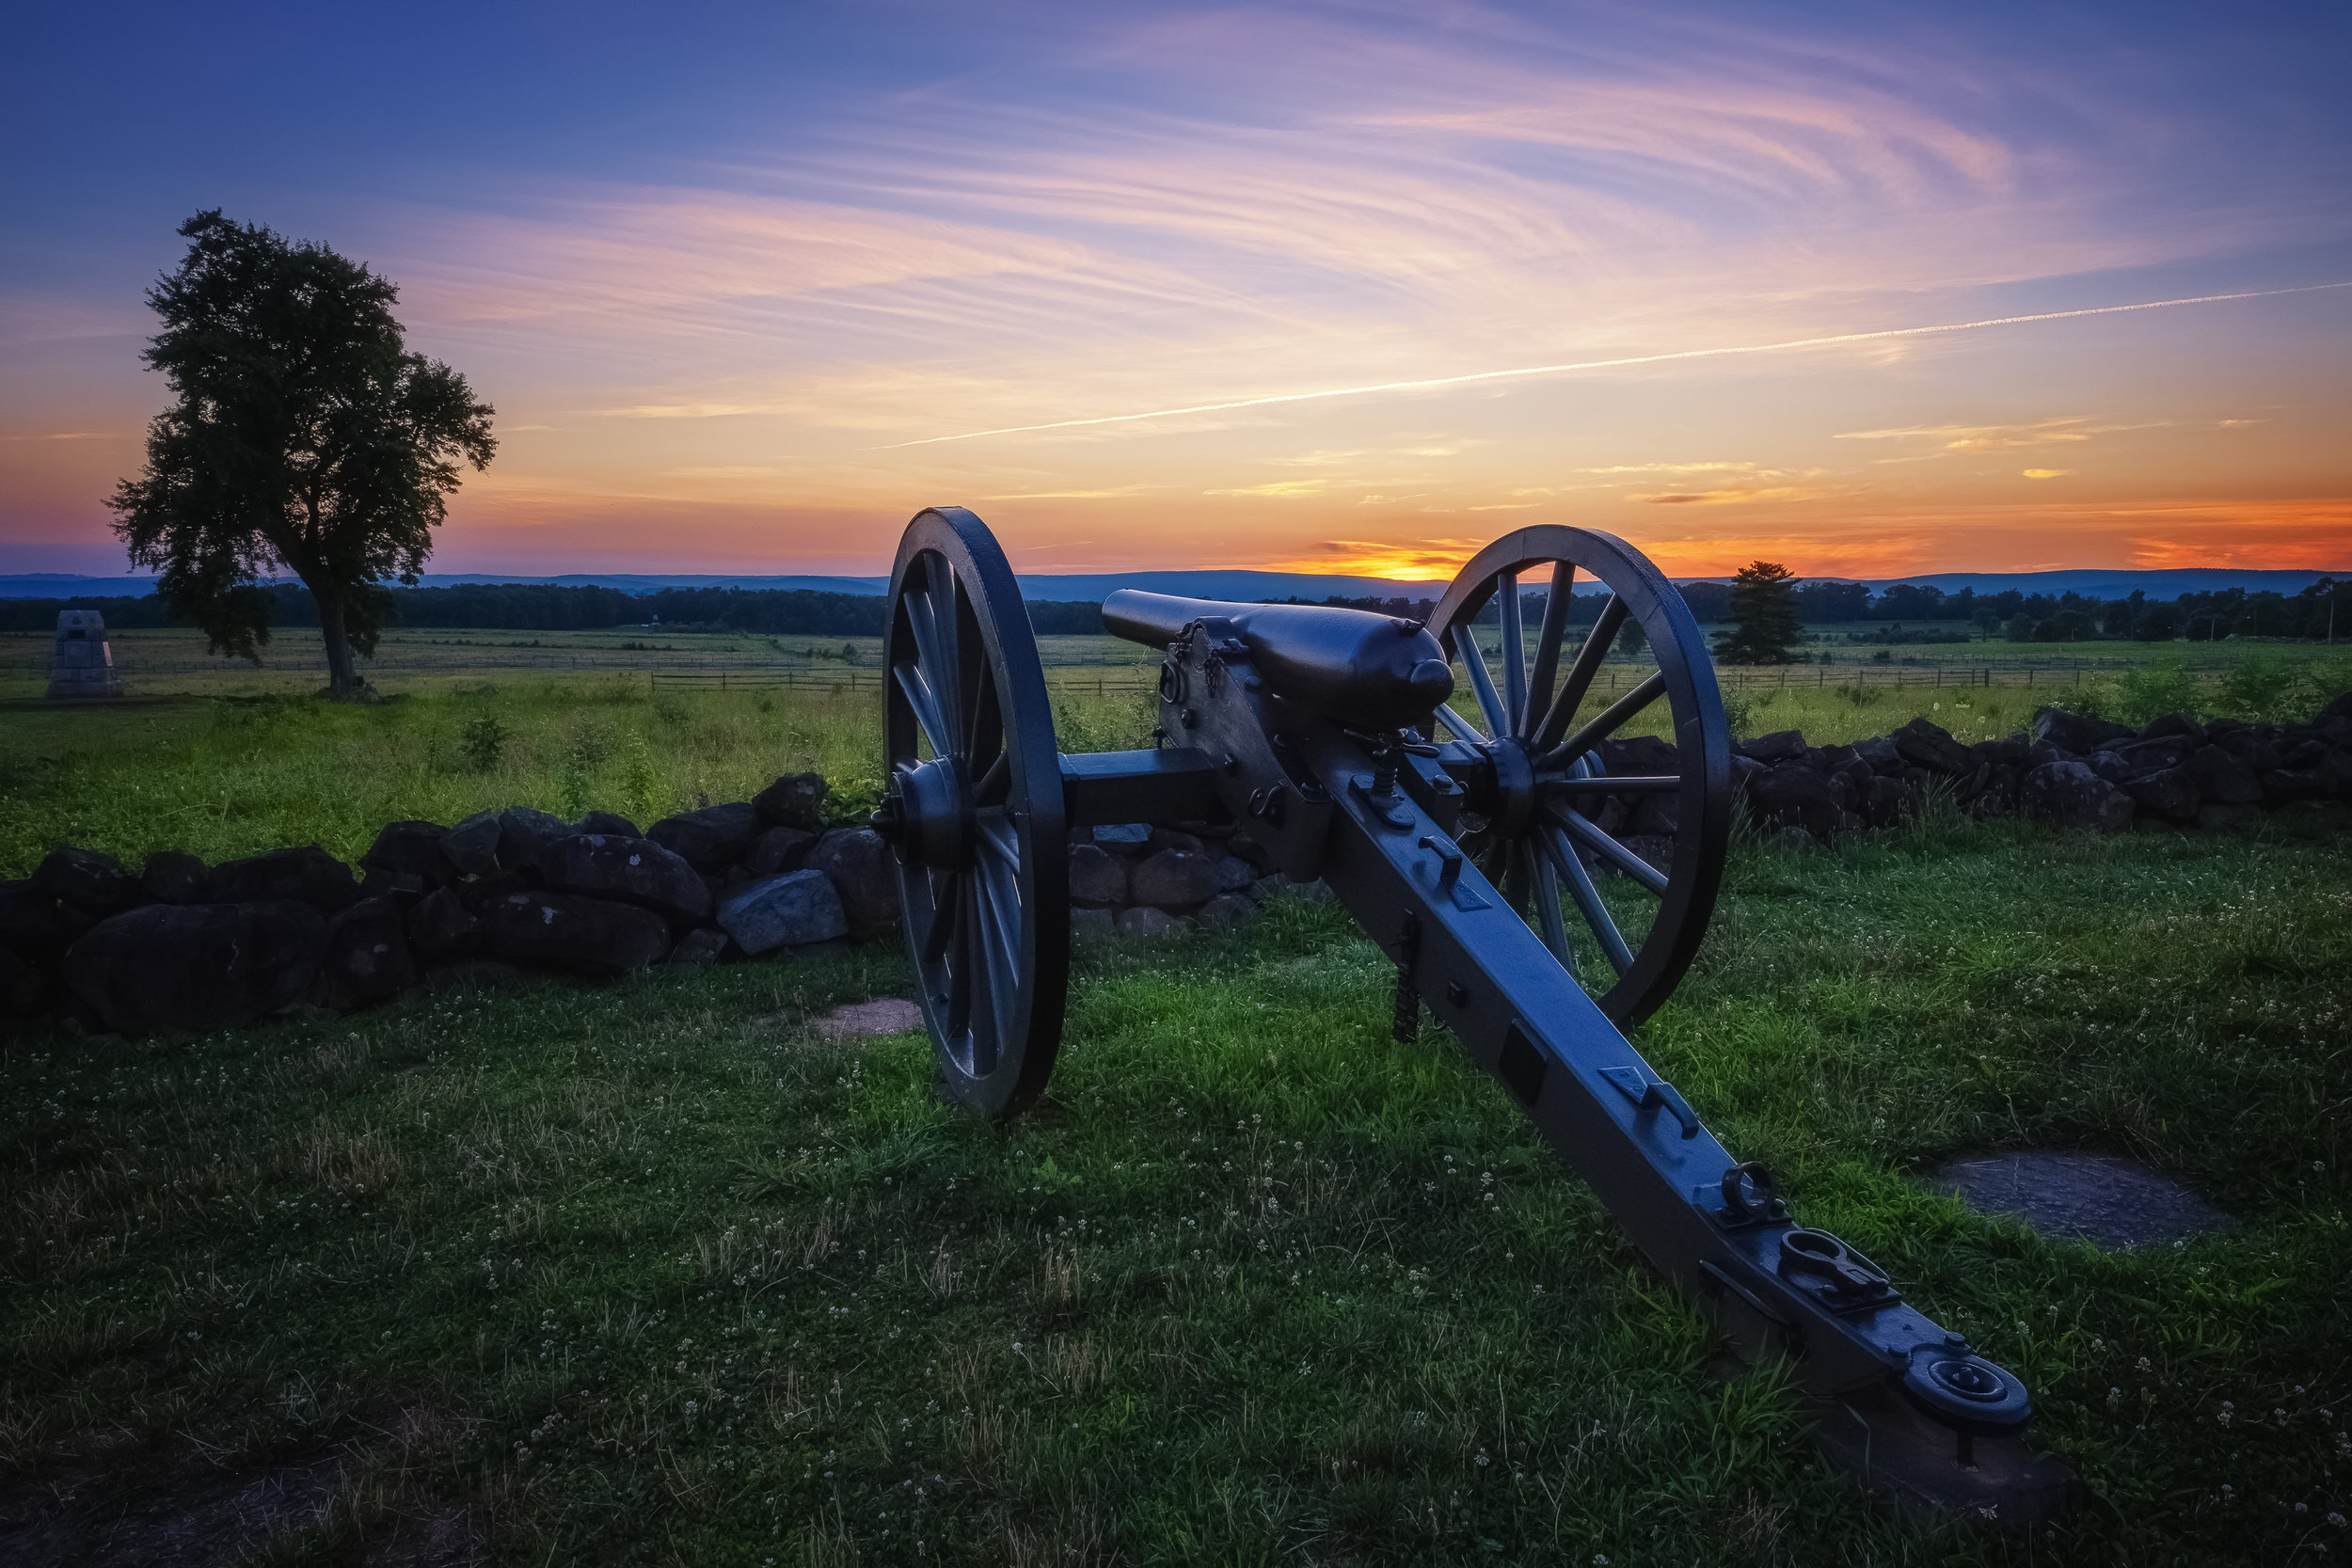 Sunset at Gettysburg - Fujifilm XT-3, 1/30 @ f/11, ISO 160, 16mm. A tripod mounted photograph shot shortly after sunset. The location is the famous Angle on Cemetery Ridge where the Confederate charge (Pickett's Charge) was repulsed on the 3rd day of the battle.